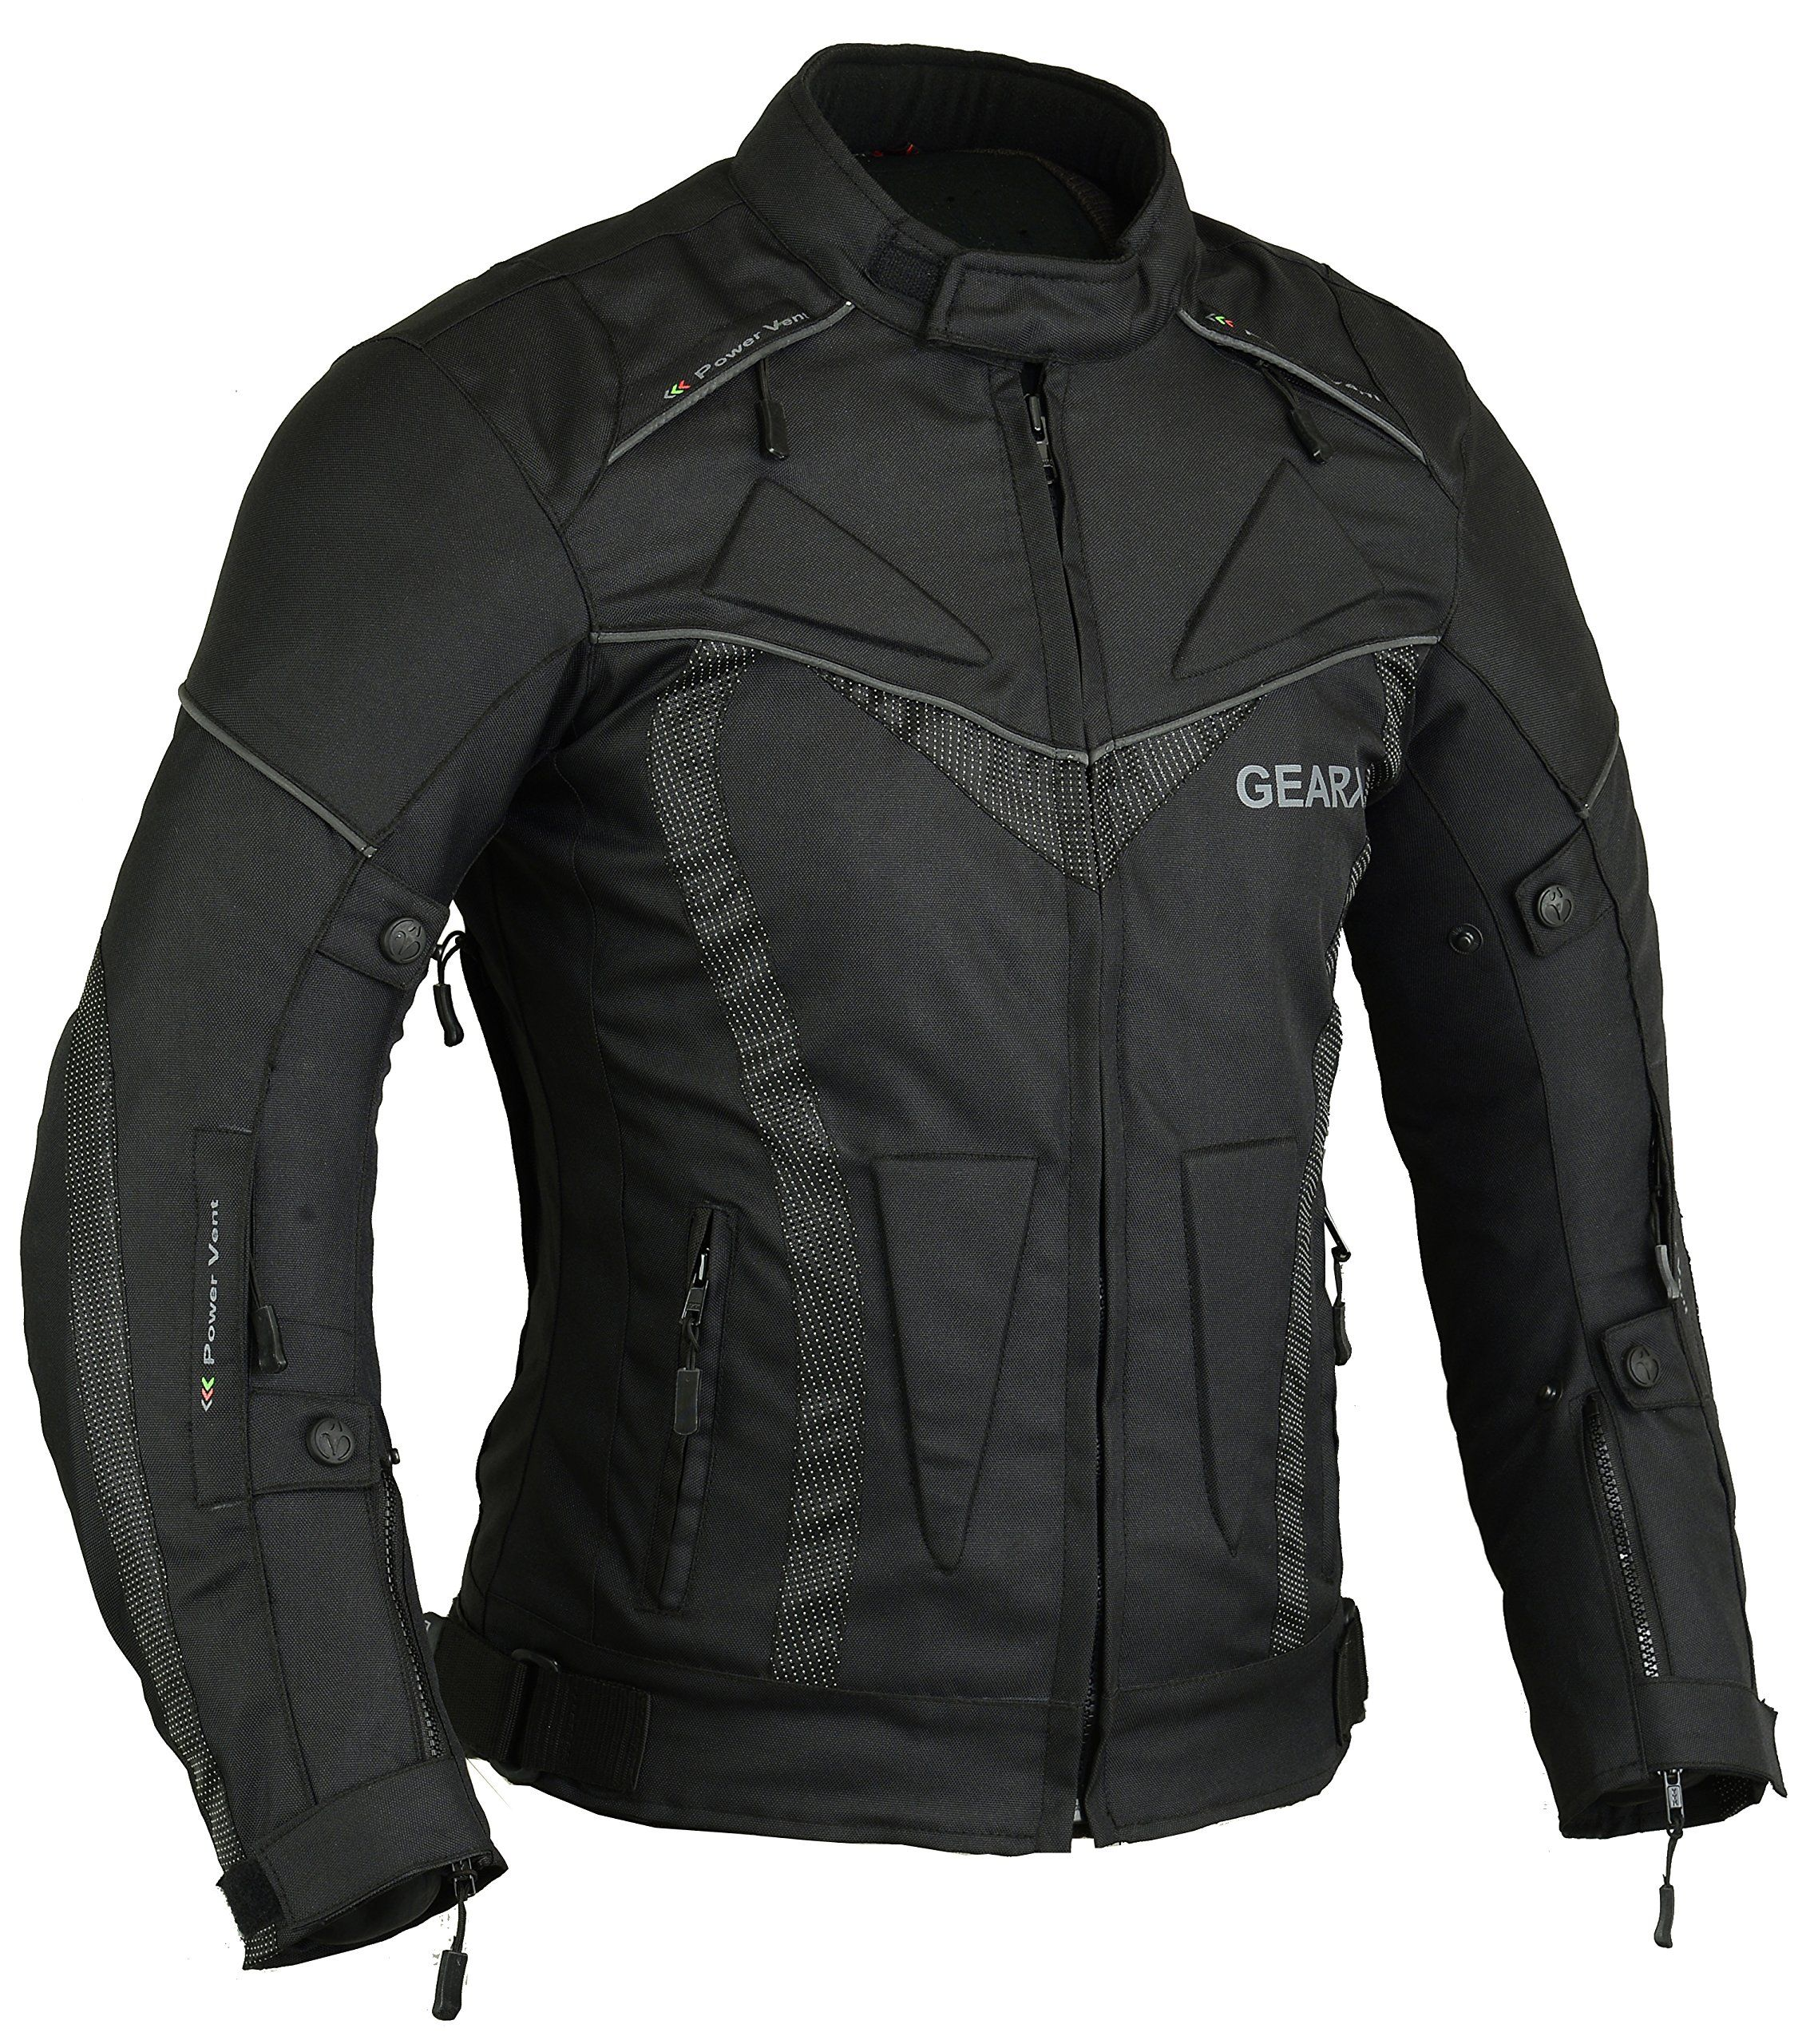 Gearx Aircon Summer Motorcycle Jacket Waterproof CE Protection All ...